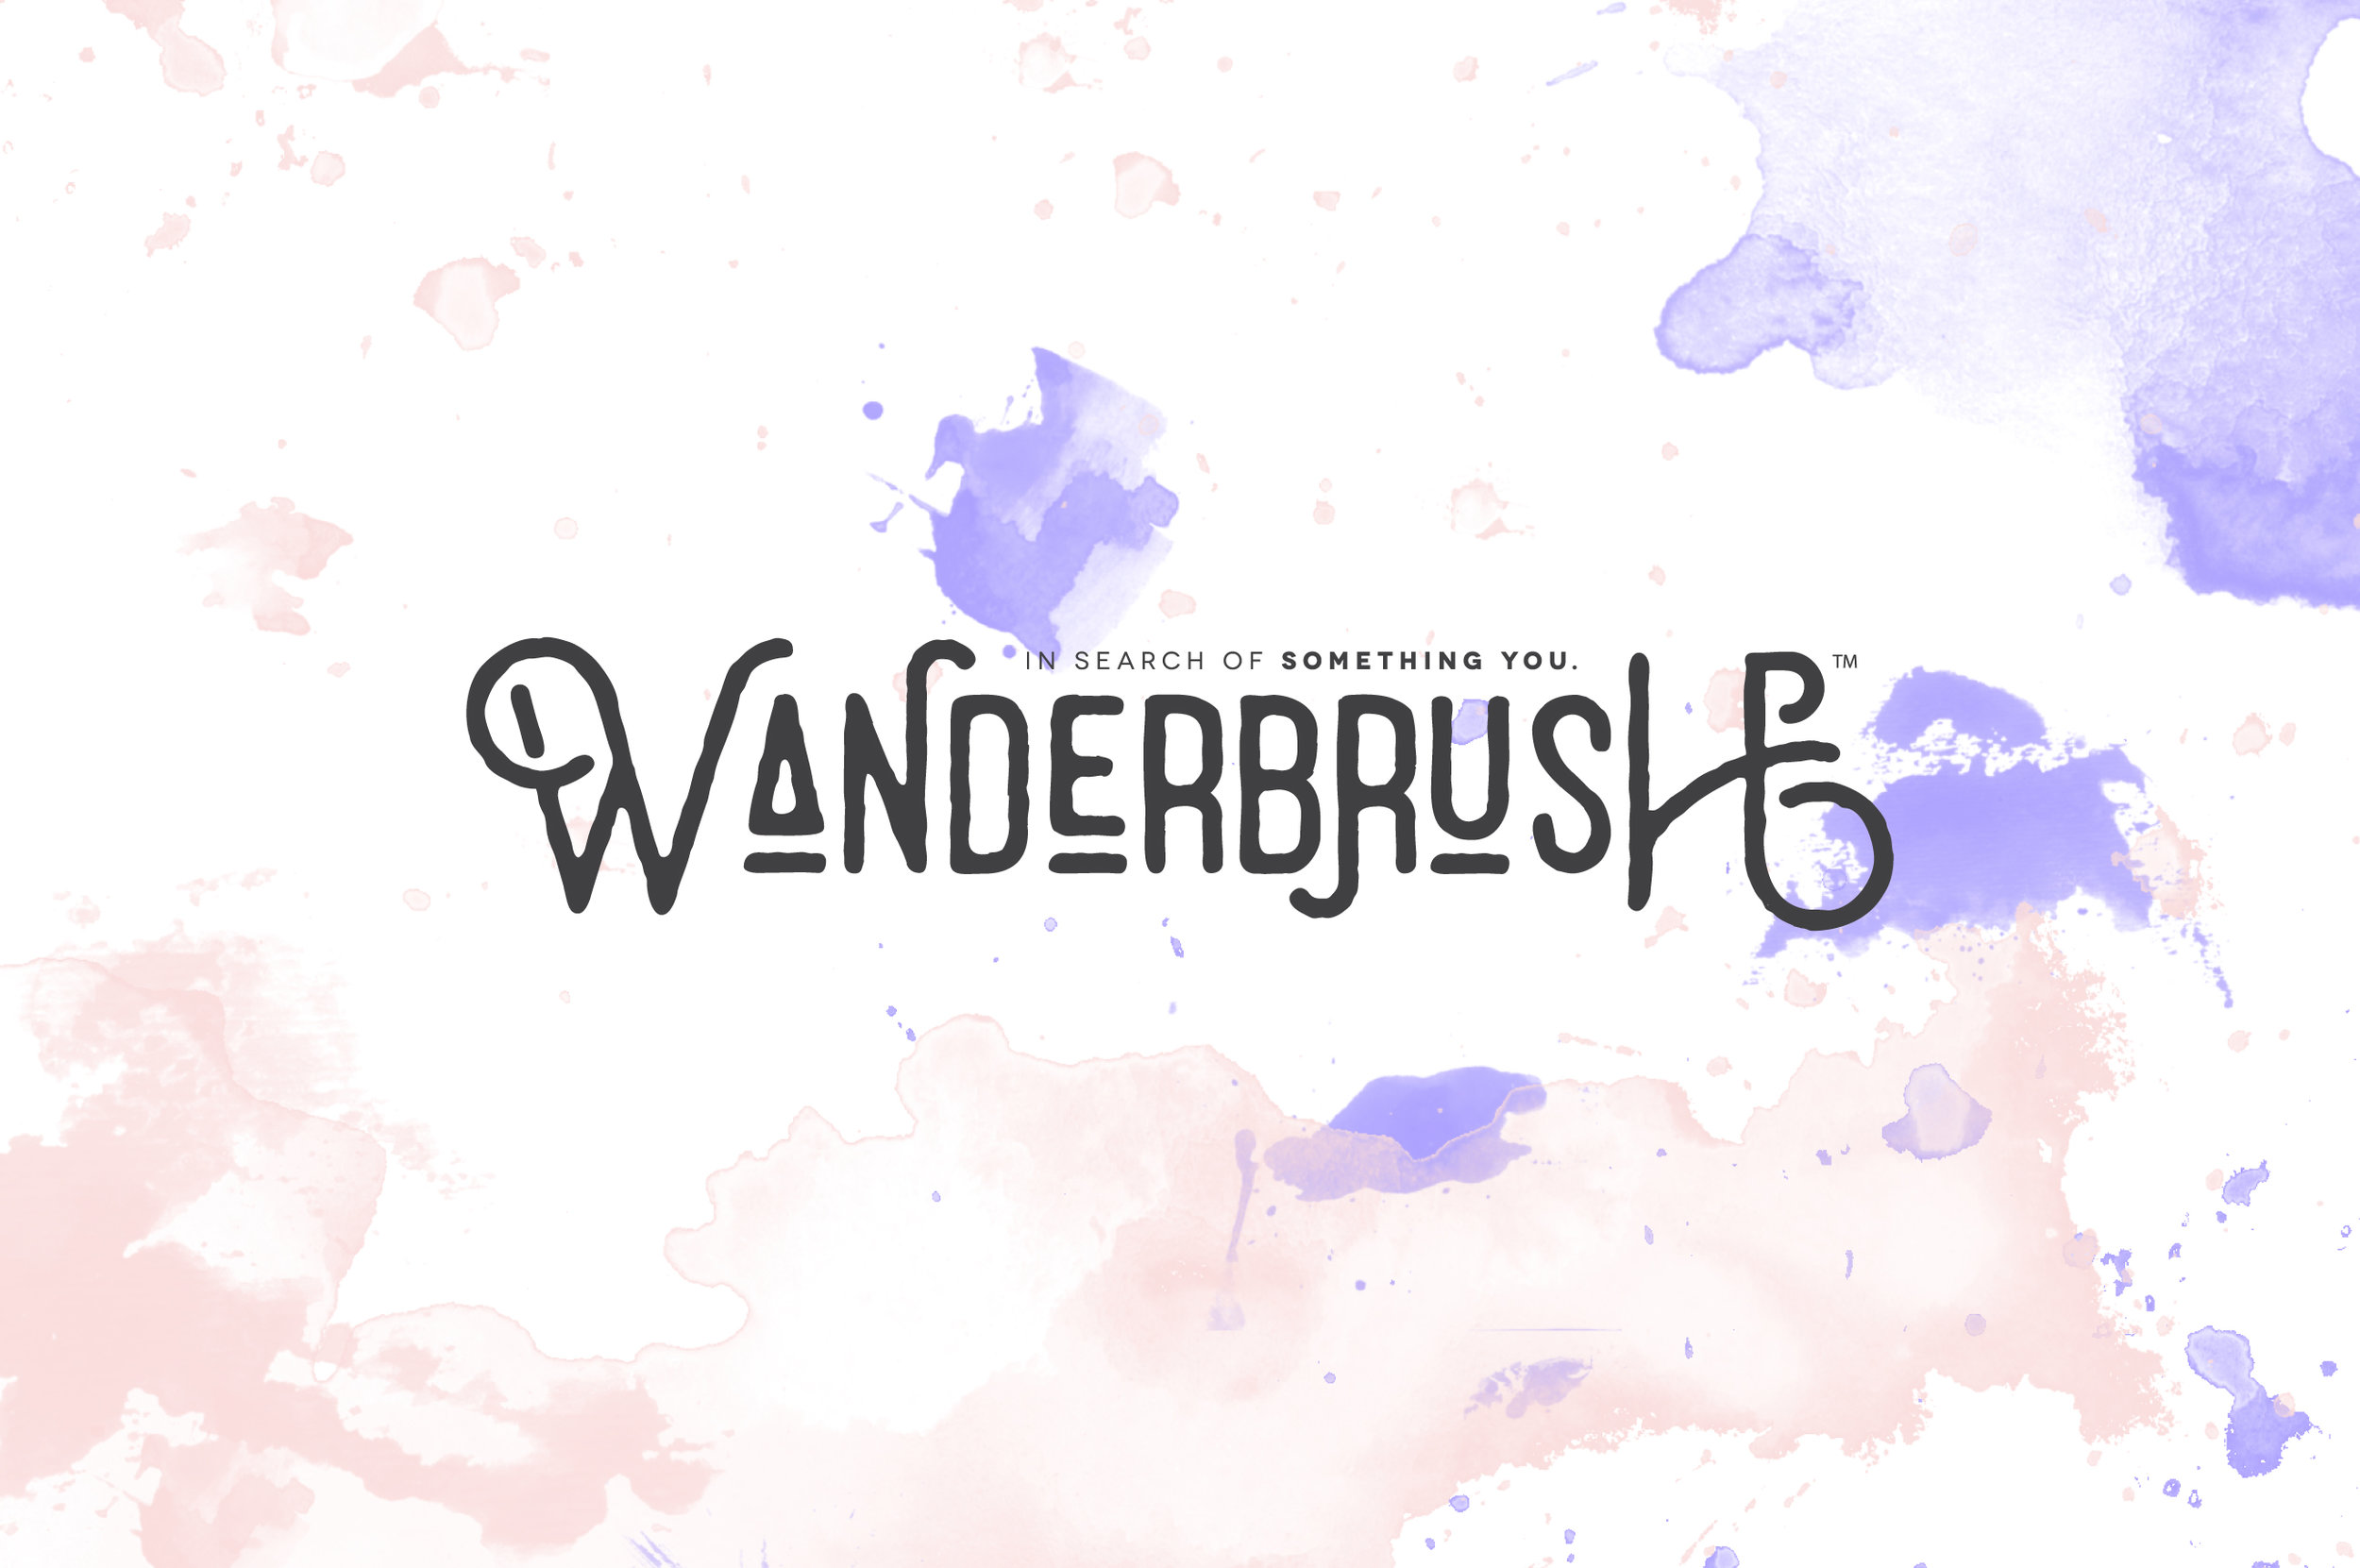 Wanderbrush_About_Footer-4.jpg